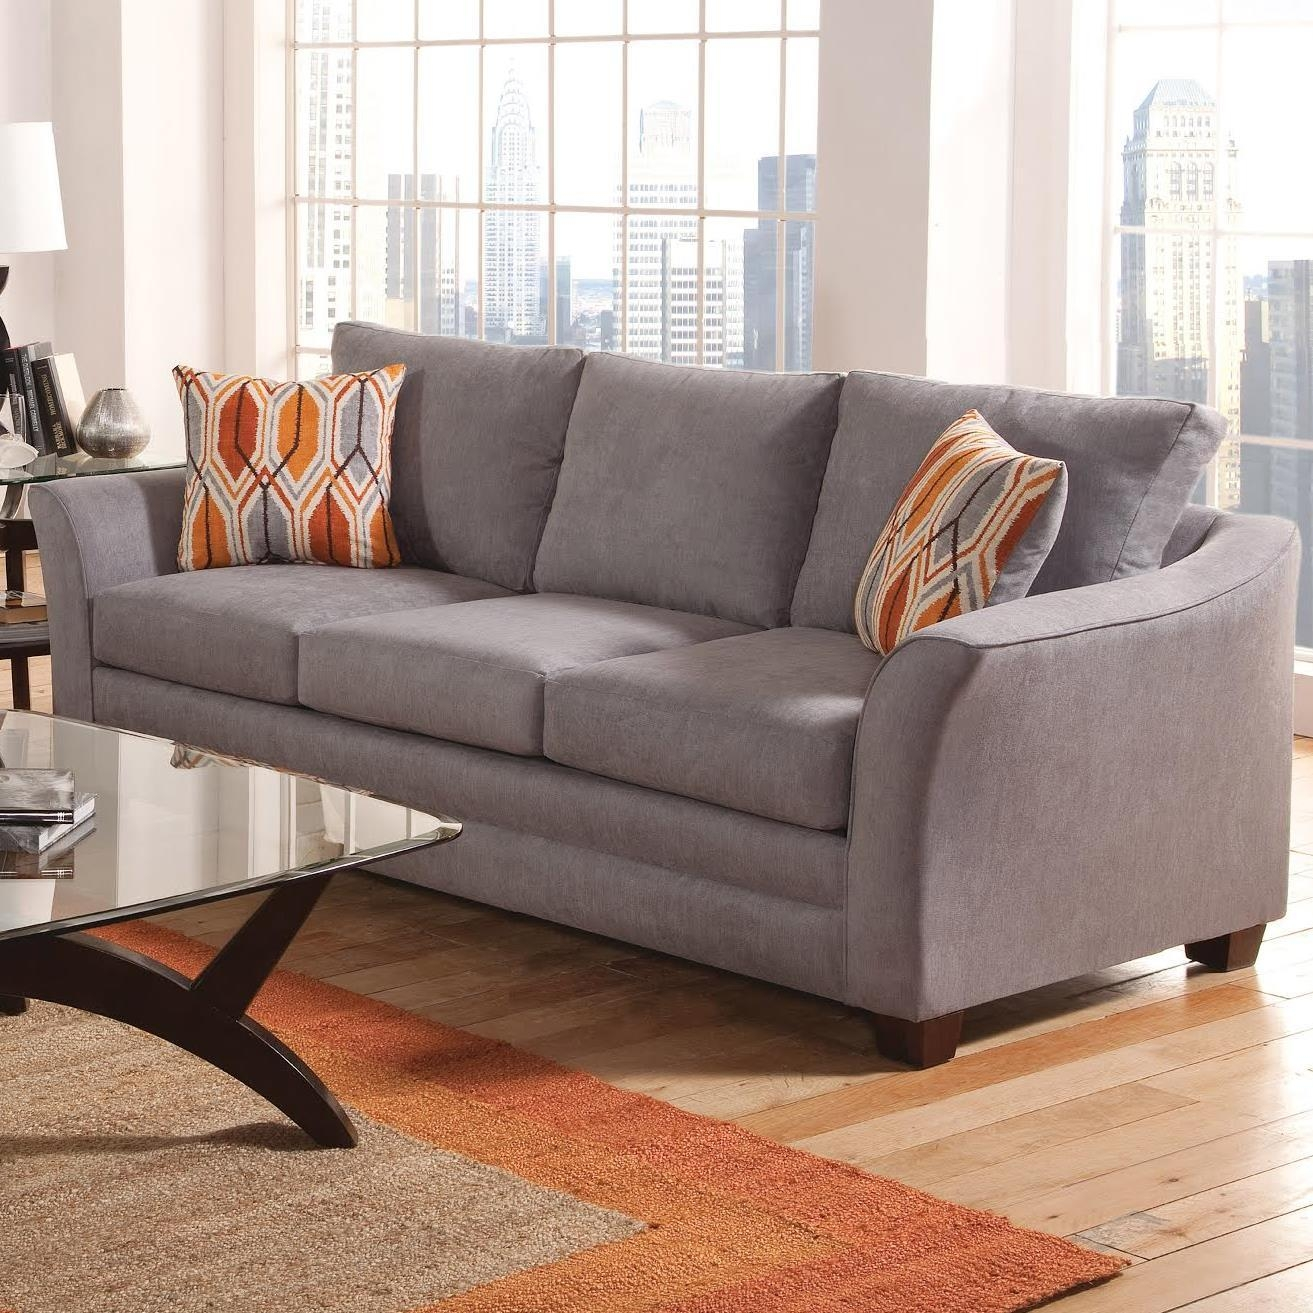 Creative Sofa Maryland Home Design Planning Lovely To Sofa Regarding Sofa Maryland (View 6 of 20)